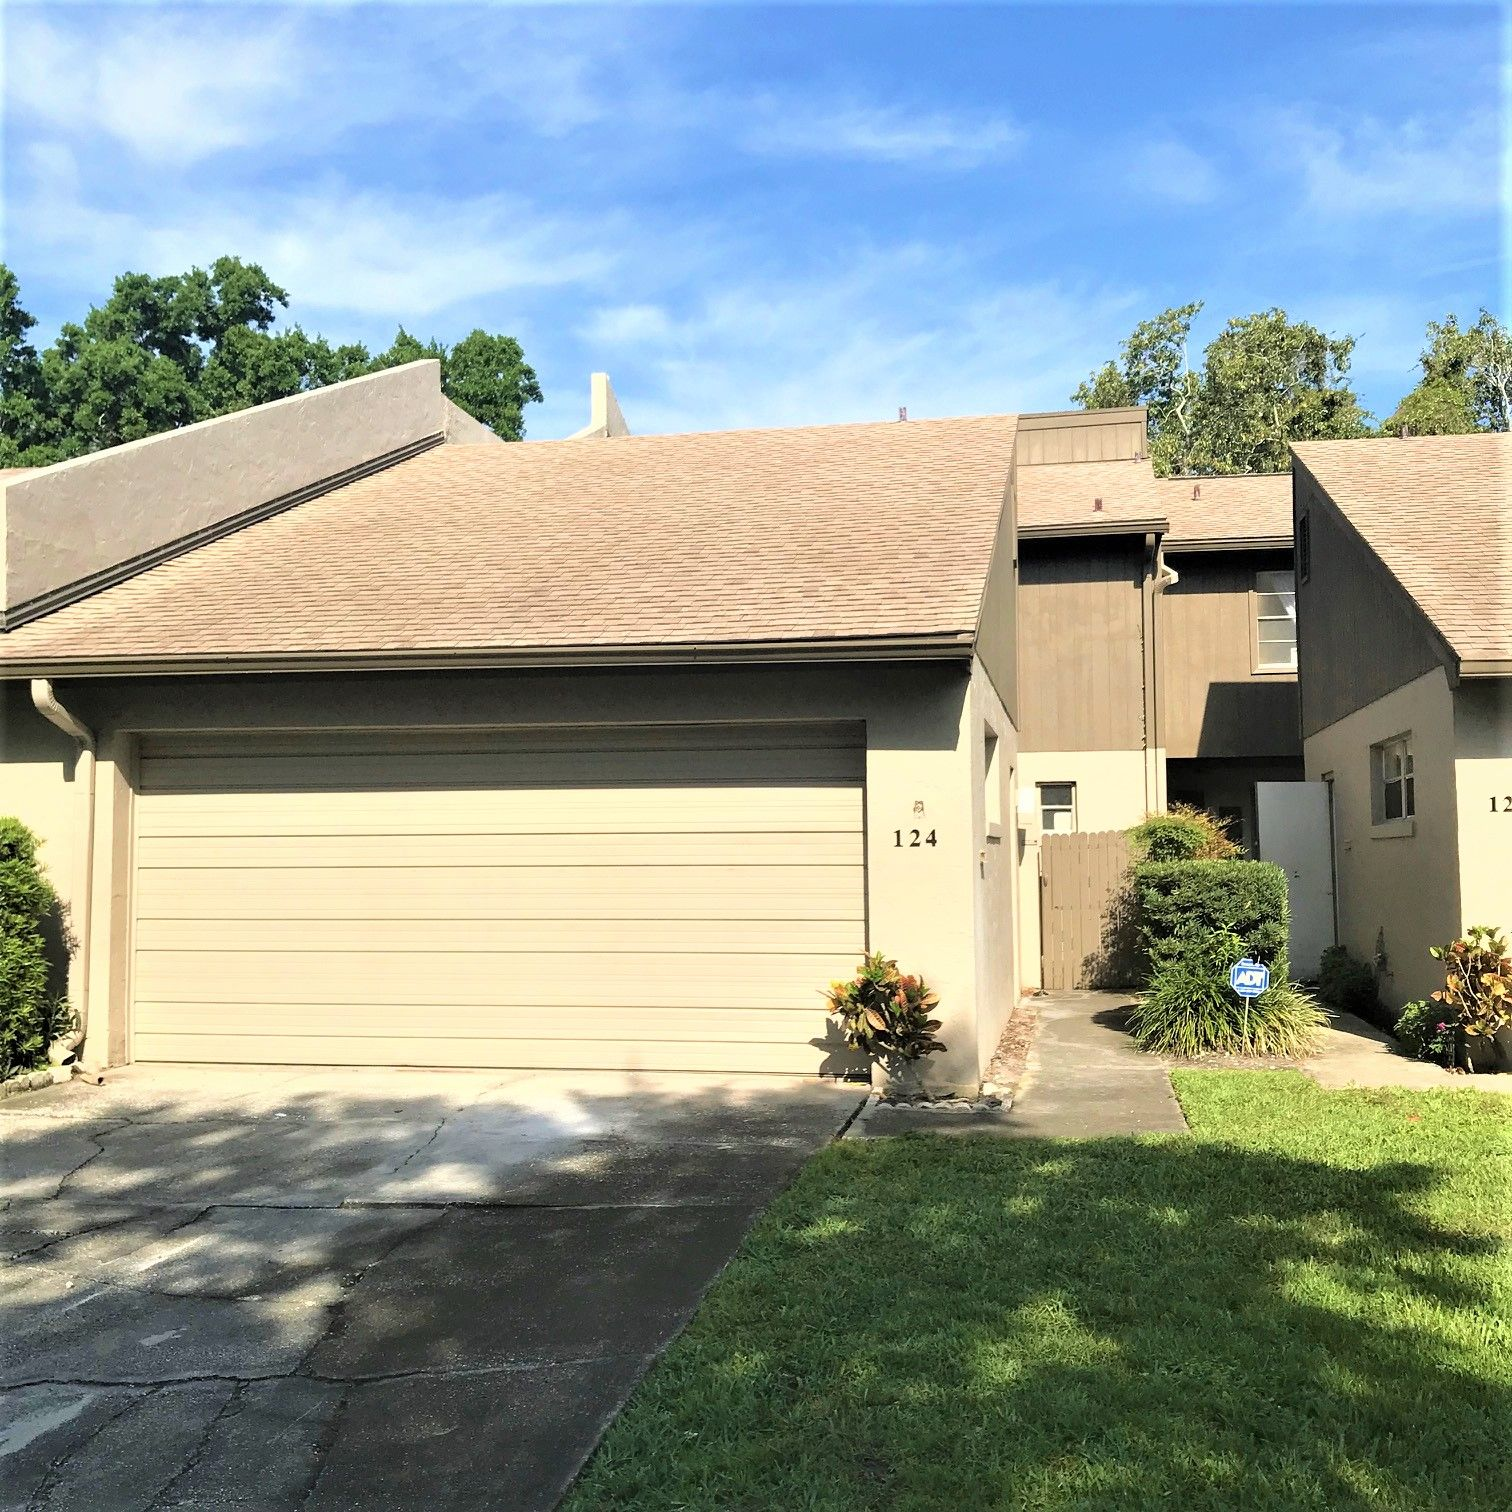 Orlando Townhome For Sale! 4 Bedrooms, 3 Baths Offered At